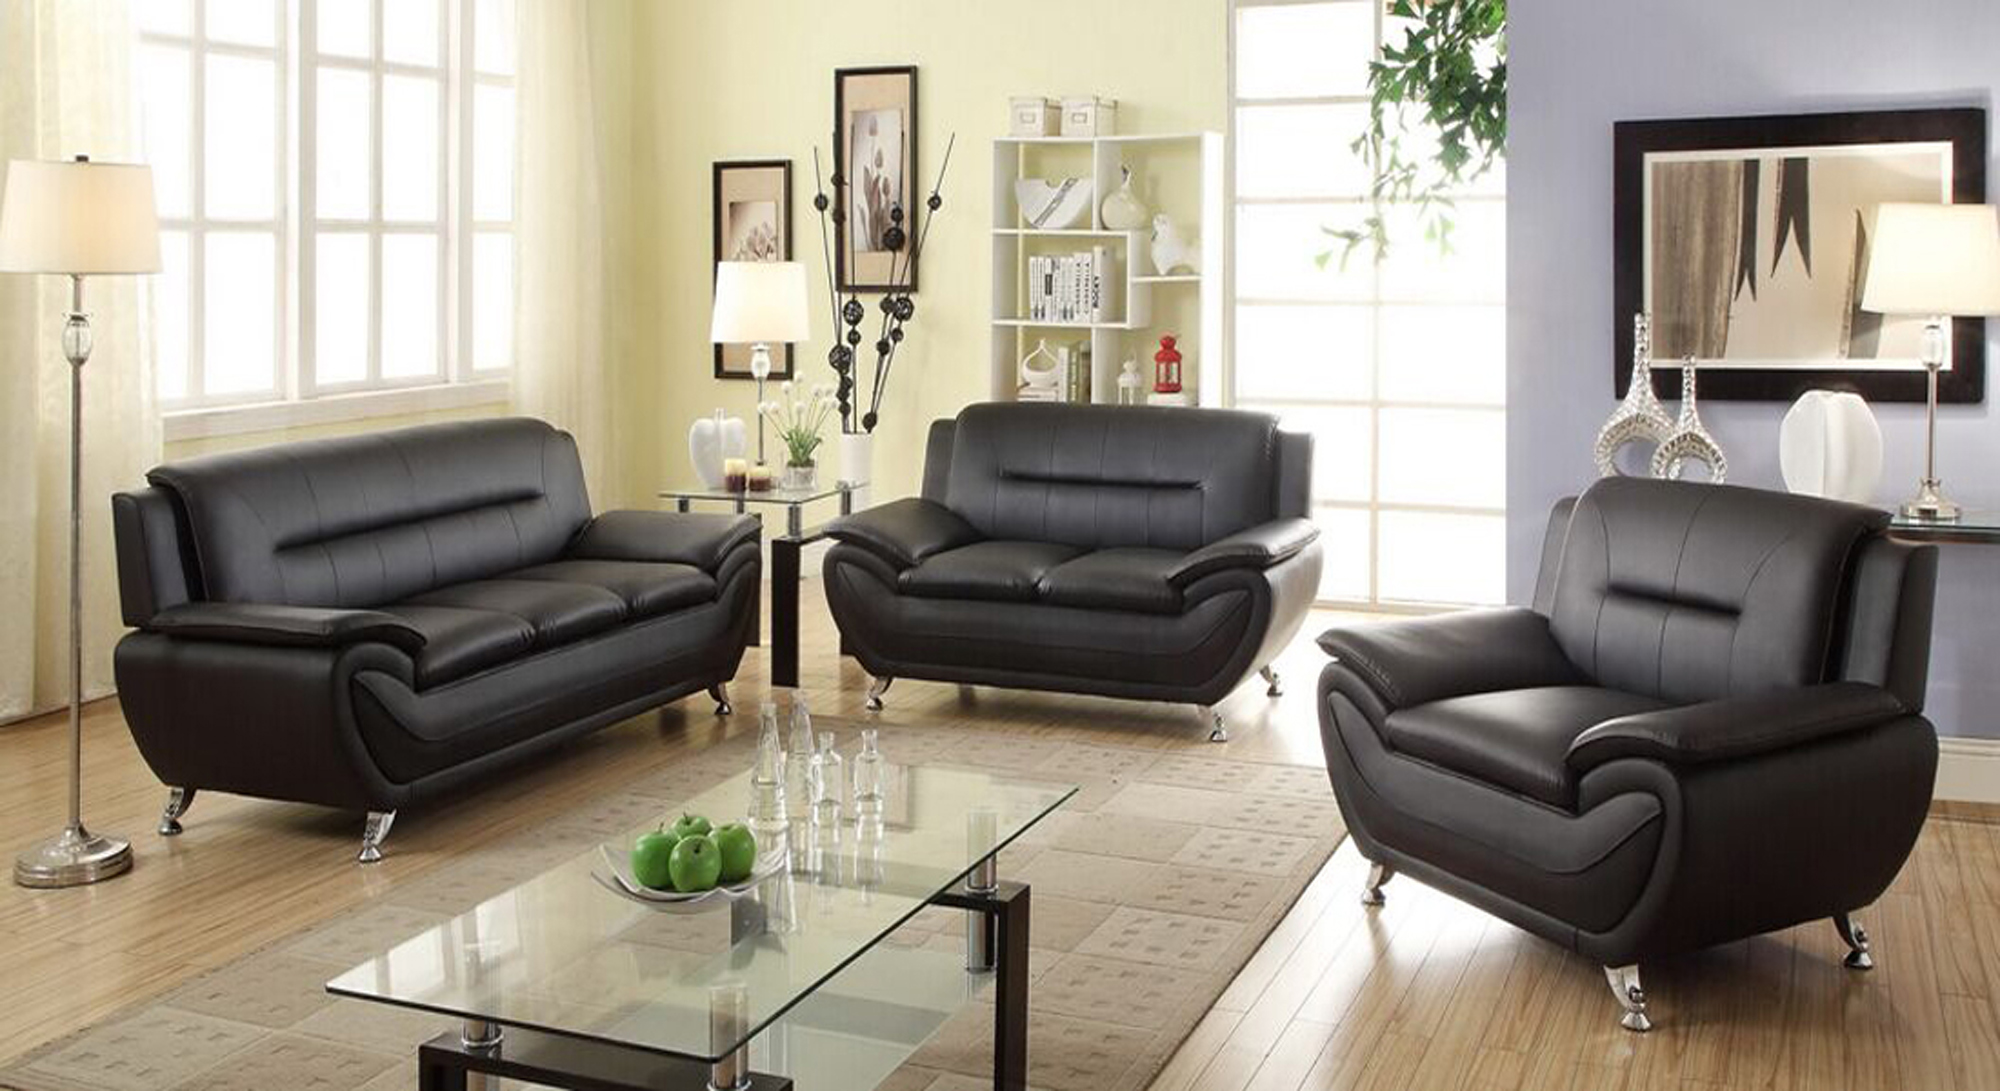 Norton 3 pc Black Faux Leather Modern Living Room Sofa set  sc 1 st  Walmart : modern living room sectionals - Sectionals, Sofas & Couches